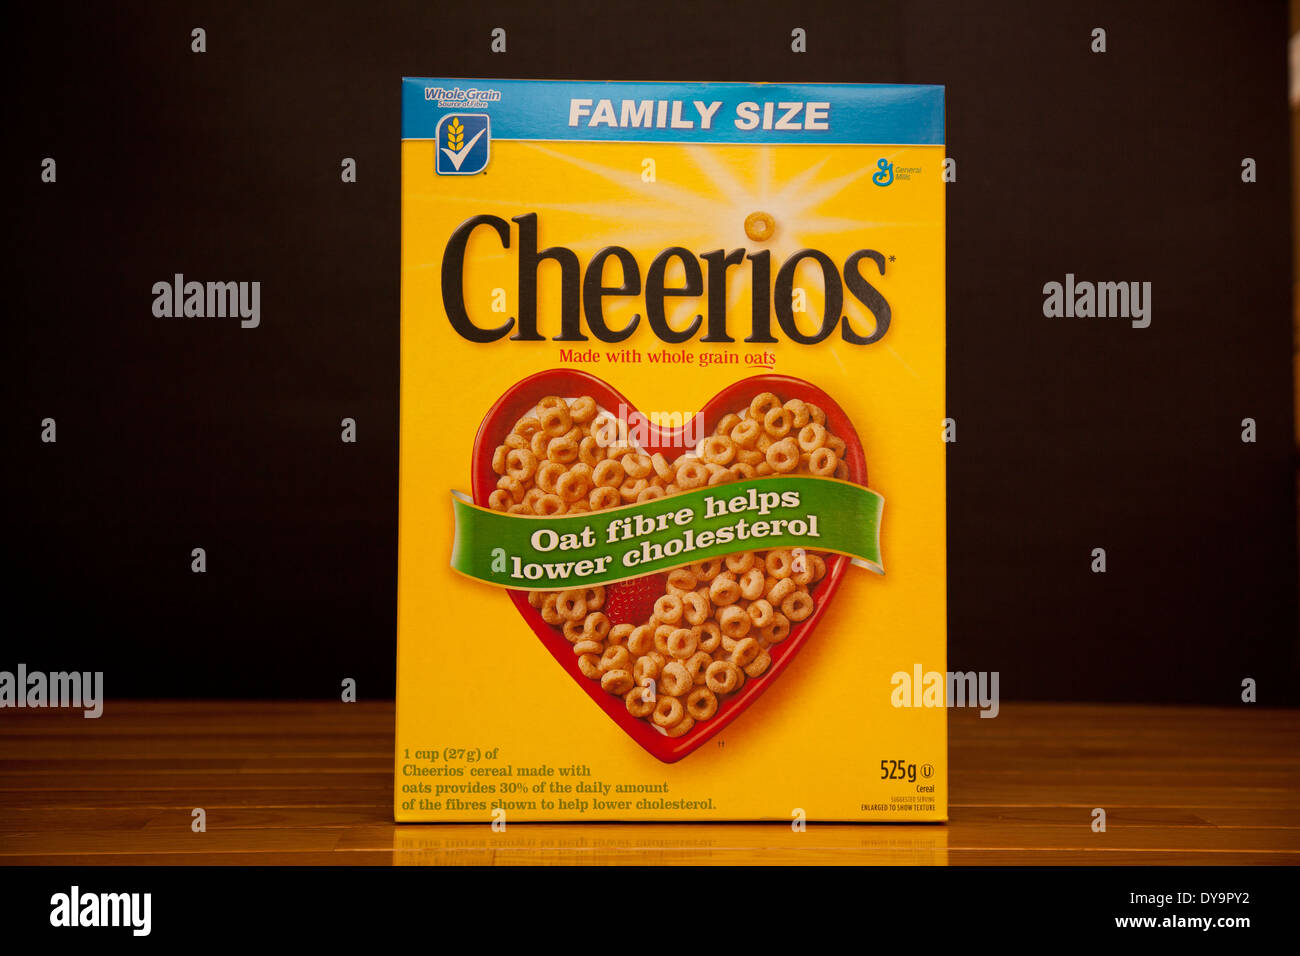 Cheerios is an American brand of breakfast cereals manufactured by General Mills. - Stock Image